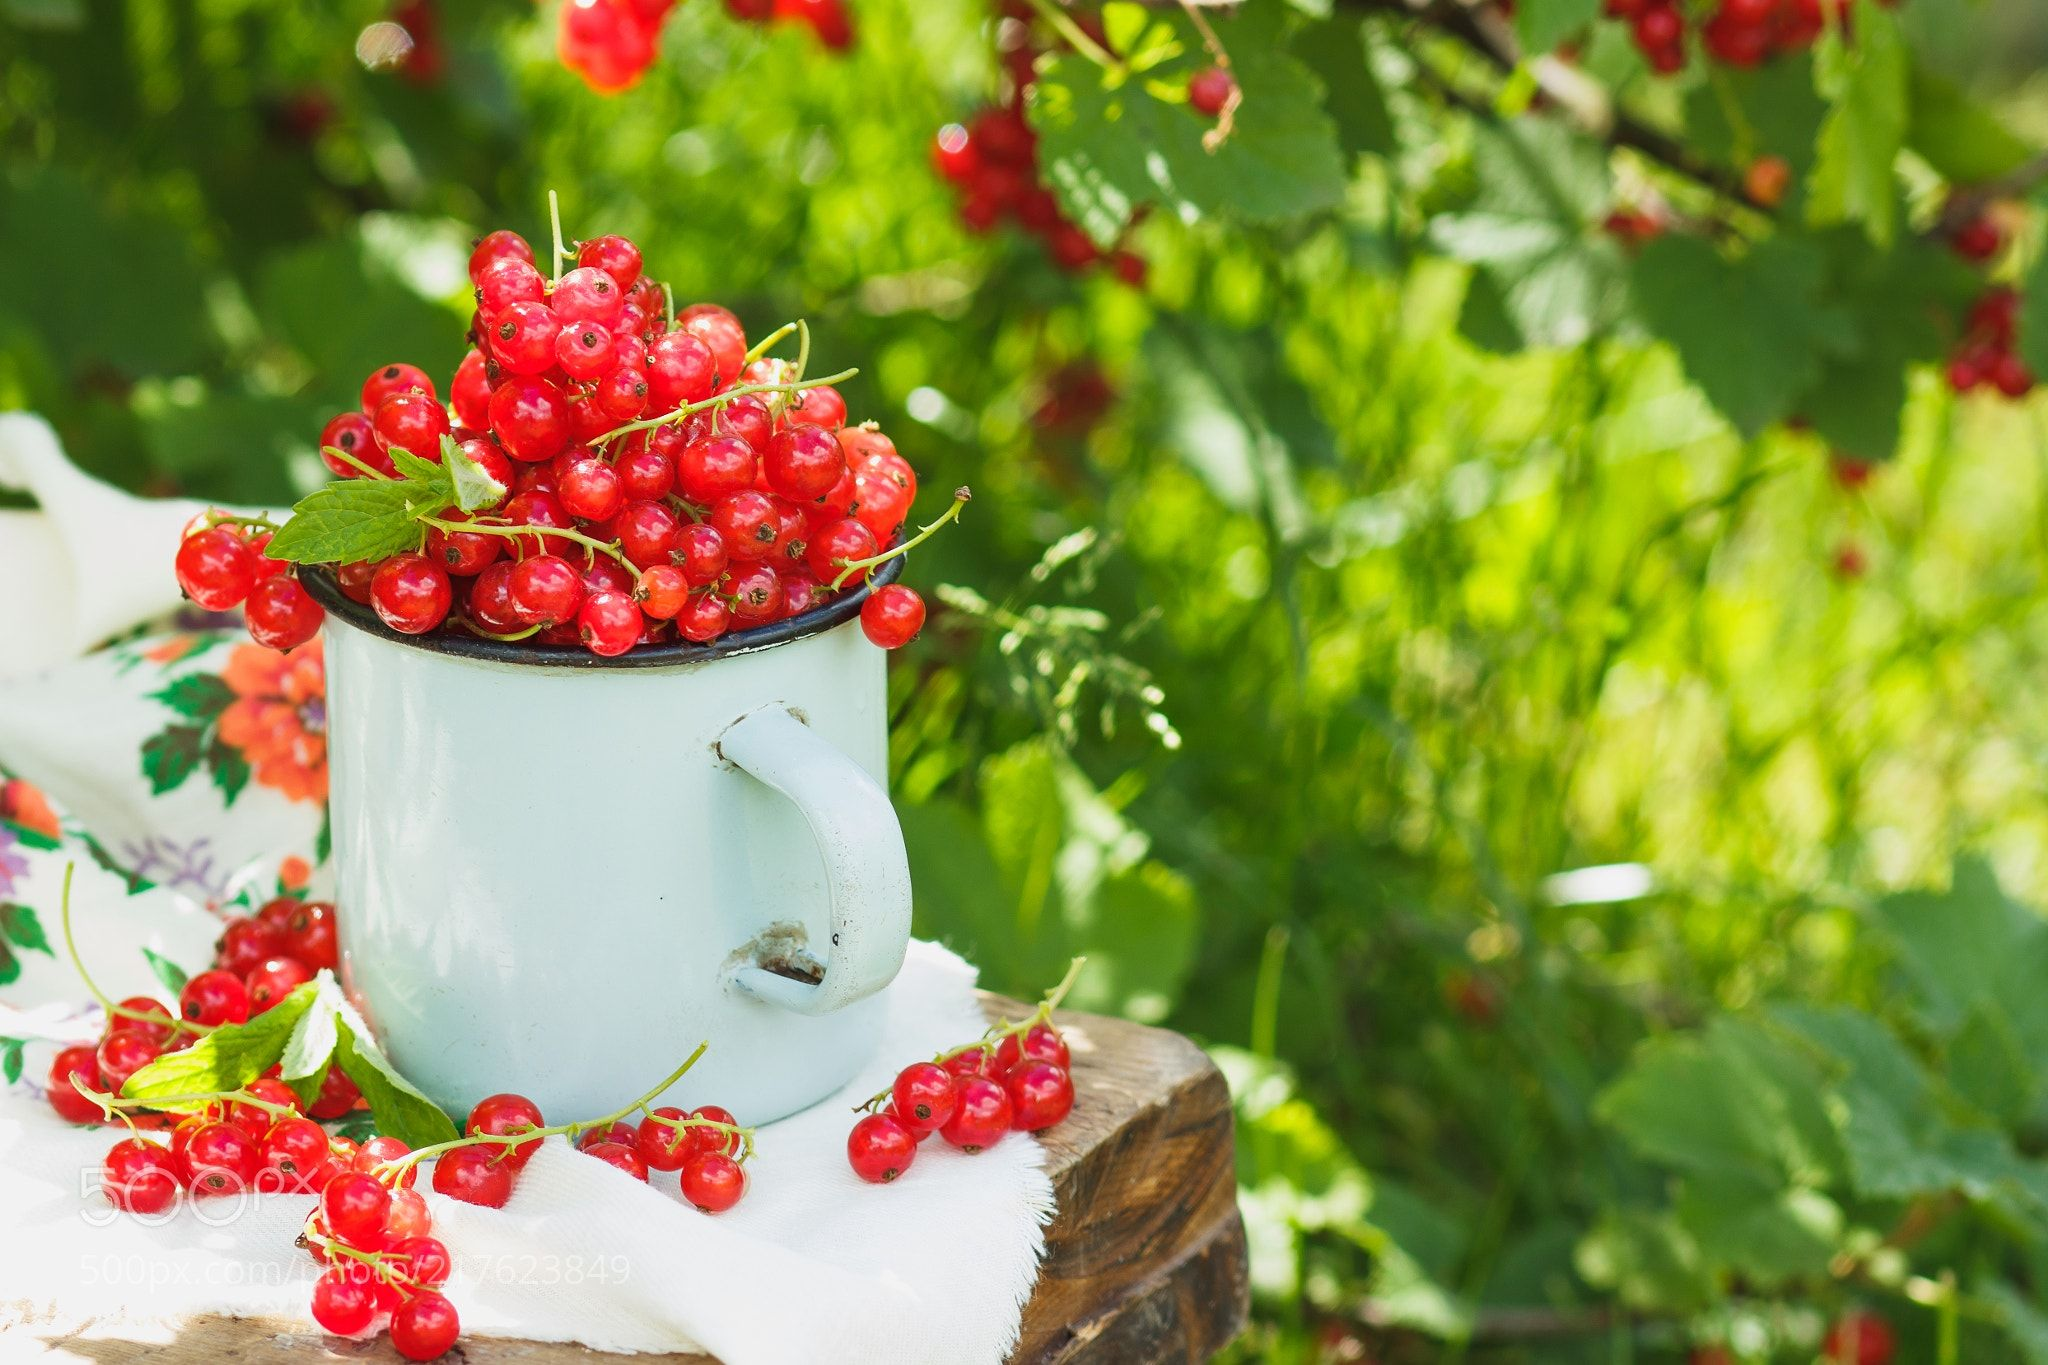 Metal mug with red currant on the table soft focus background